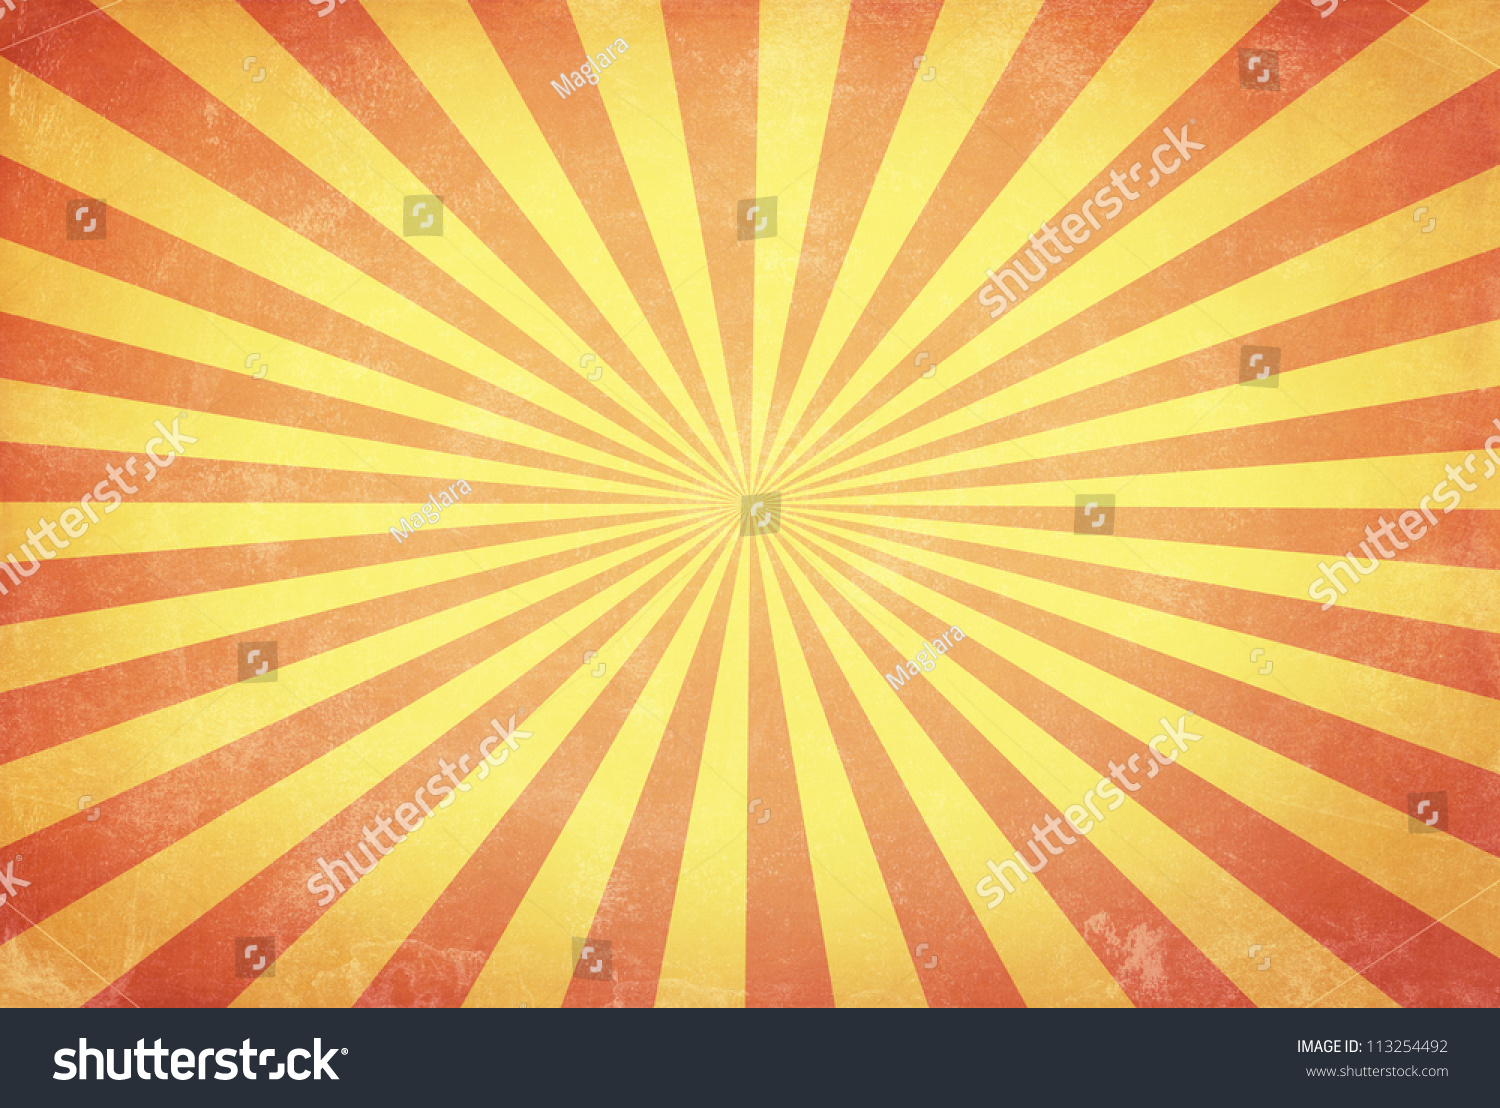 Vintage Background With Sun Burst Stock Photo 113254492 ... Vintage Burst Background